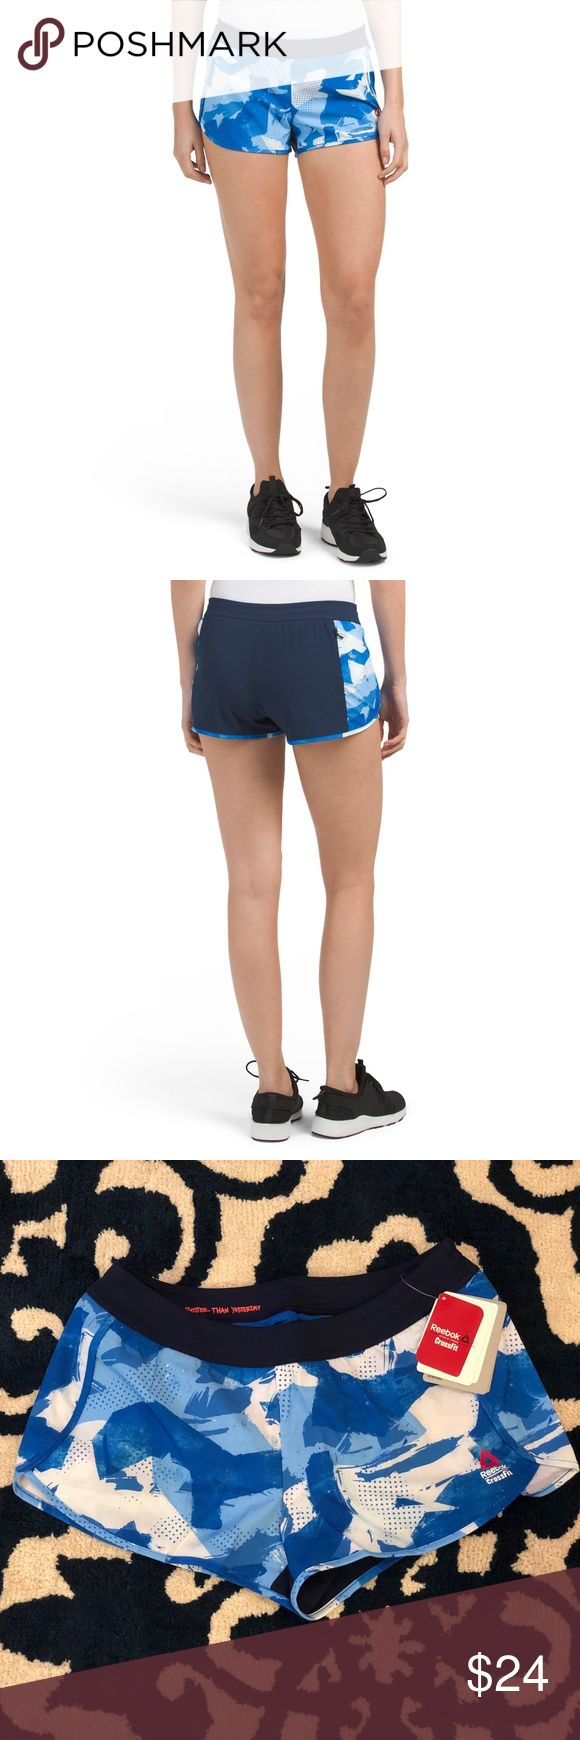 "Reebook Printed Crossfit Shorts Brand new with tags. The shorts have a blue and white pattern. The size is small.  These shorts feature an elastic waistband with interior drawstring, built-in mesh lining, and a rear zipper pocket. The shorts also feature an anti-microbial fabric for odor control and Reebok's ""Speedwick"" technology that wicks moisture from your skin to keep you dry and comfy. The shorts low-rise.   Width: 14 inches across the waist Length: 11 inches Reebok Shorts"